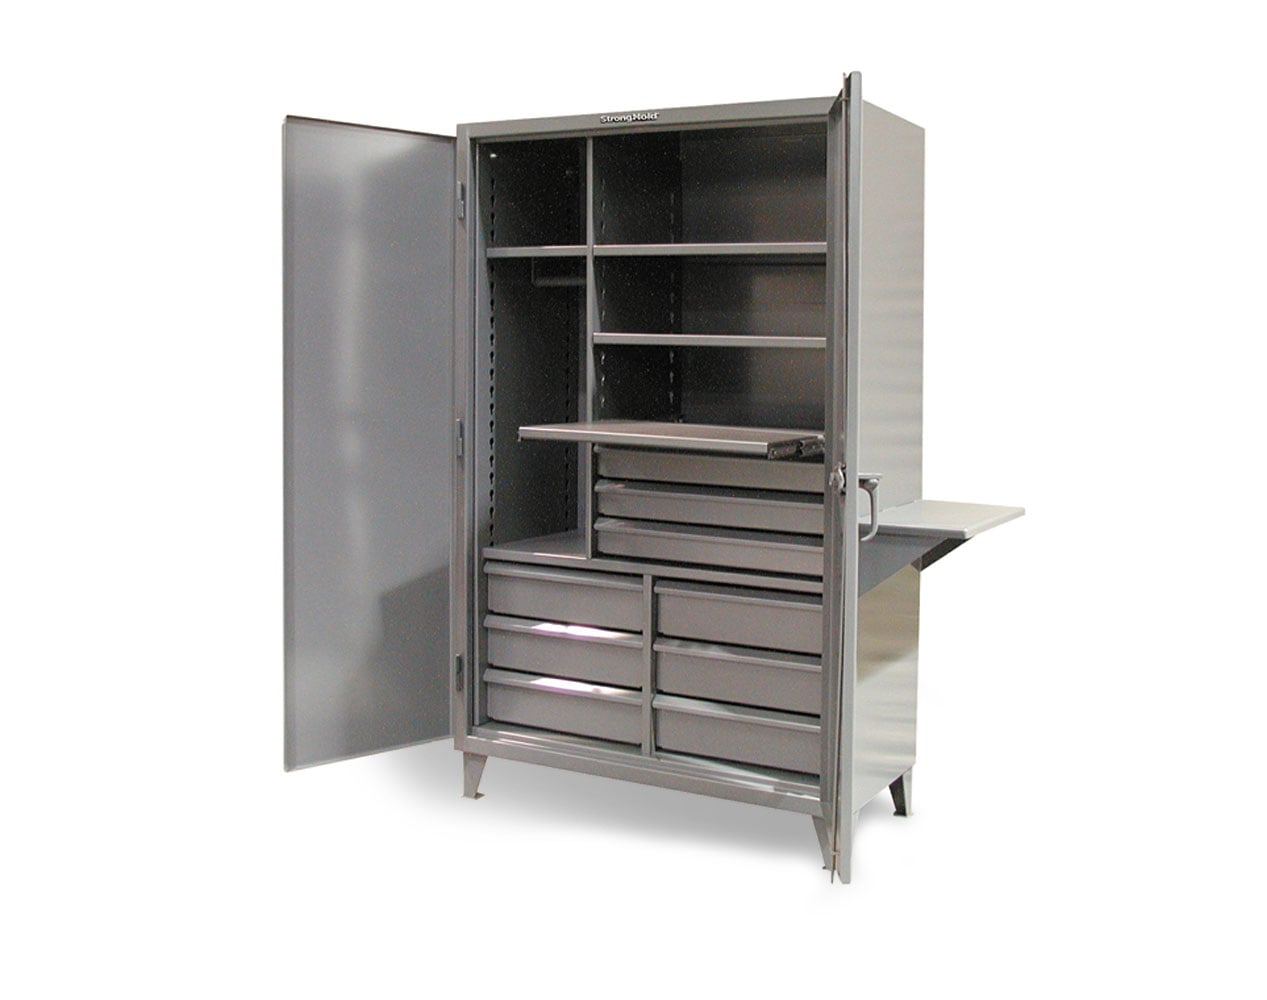 Extreme Duty 12 GA Uniform Cabinet with Slide-Out Shelf, 9 Half-Width Drawers, 4 Shelves, Vice Shelf – 48 In. W x 24 In. D x 78 In. H